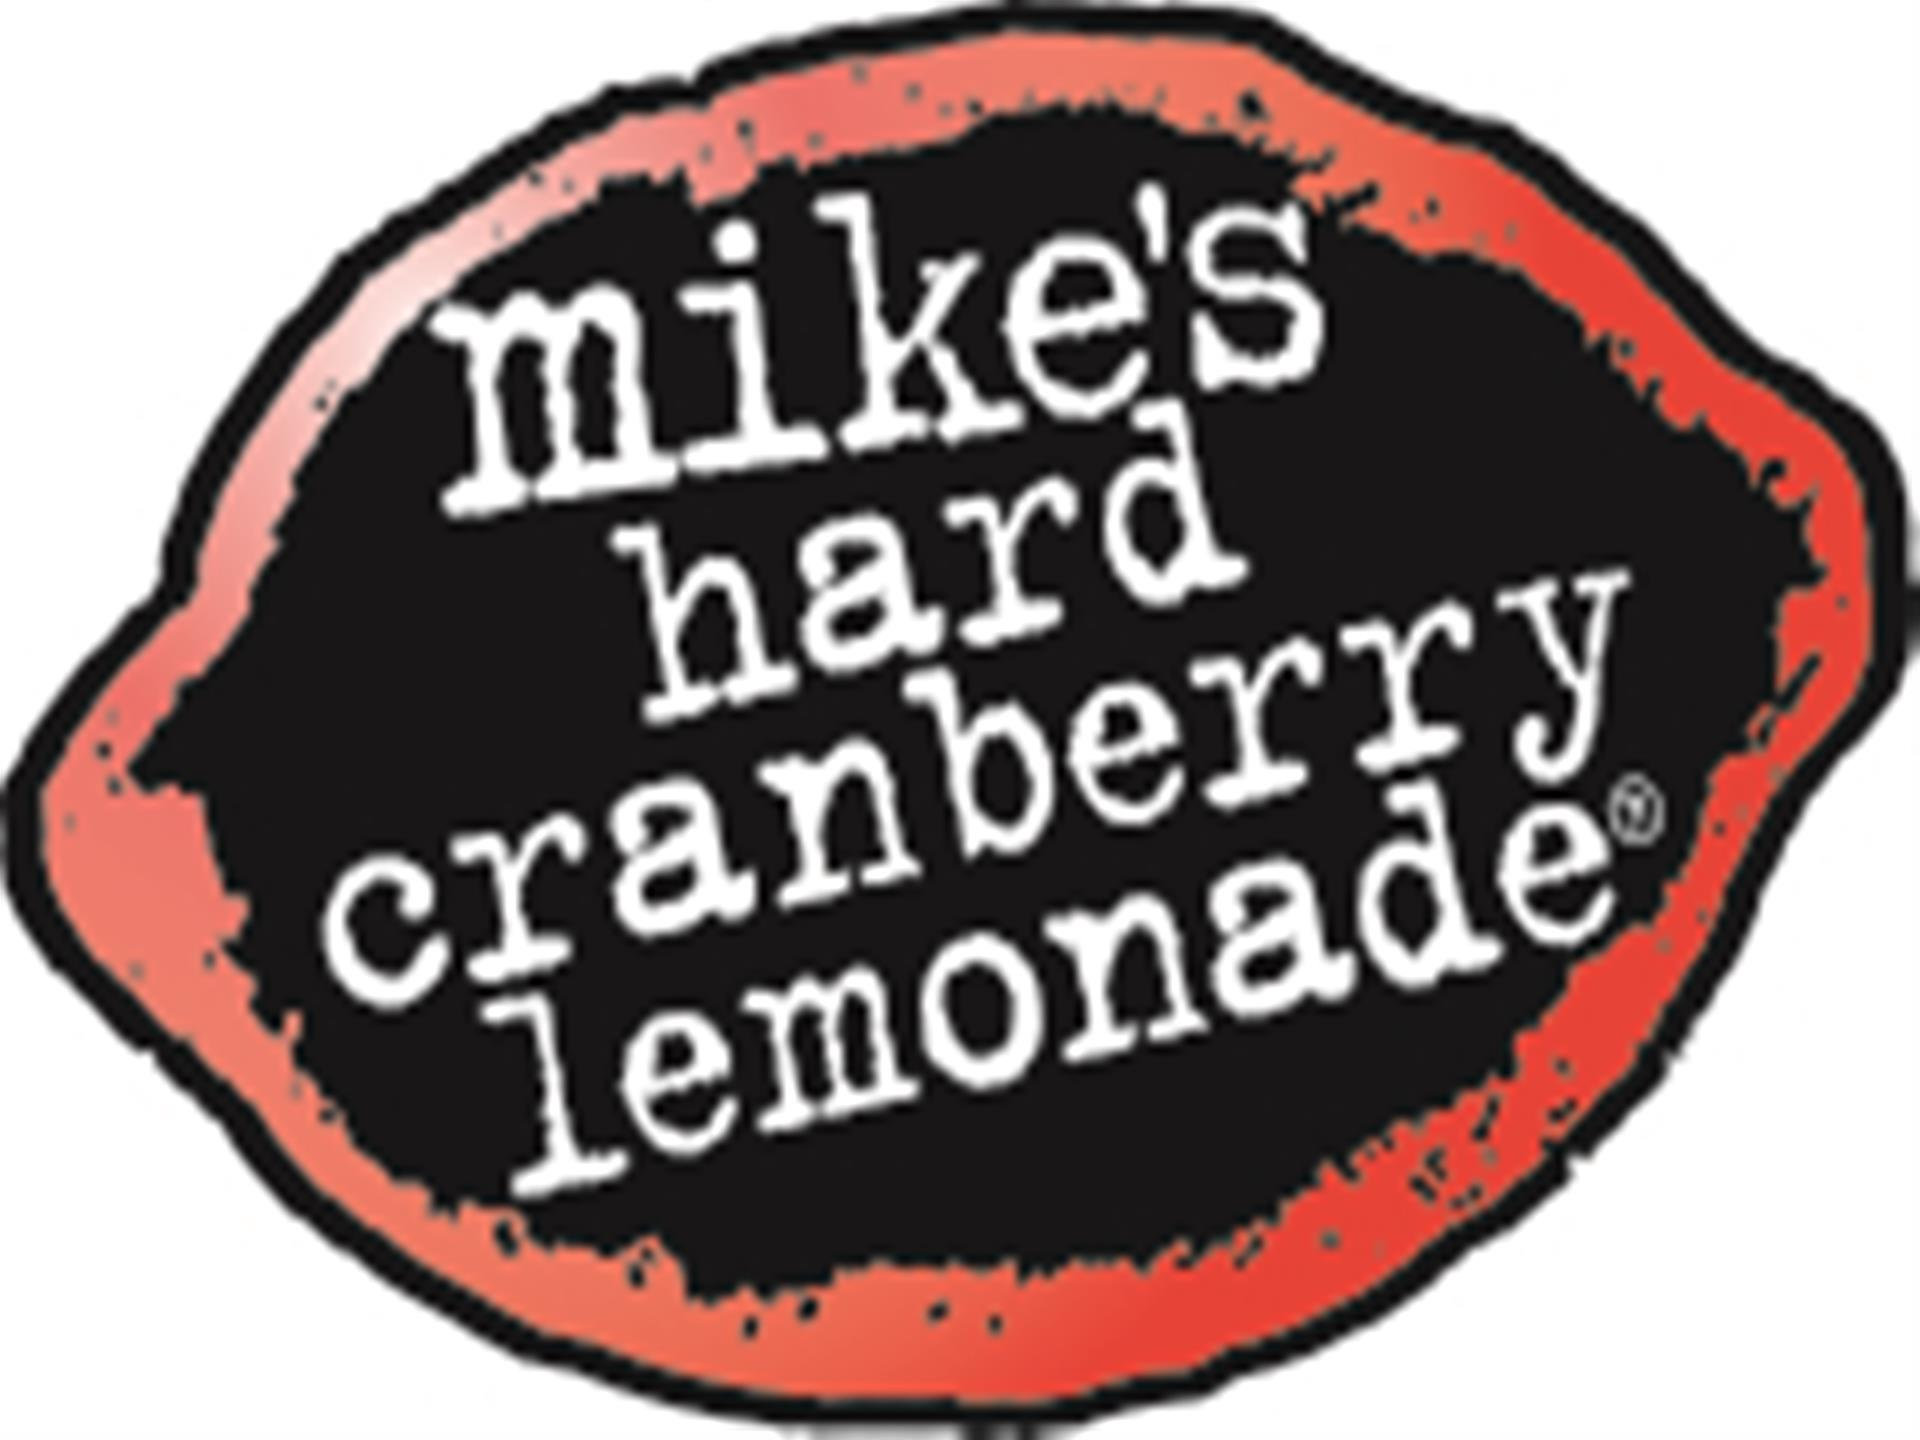 mikes hard cranberry lemonade logo